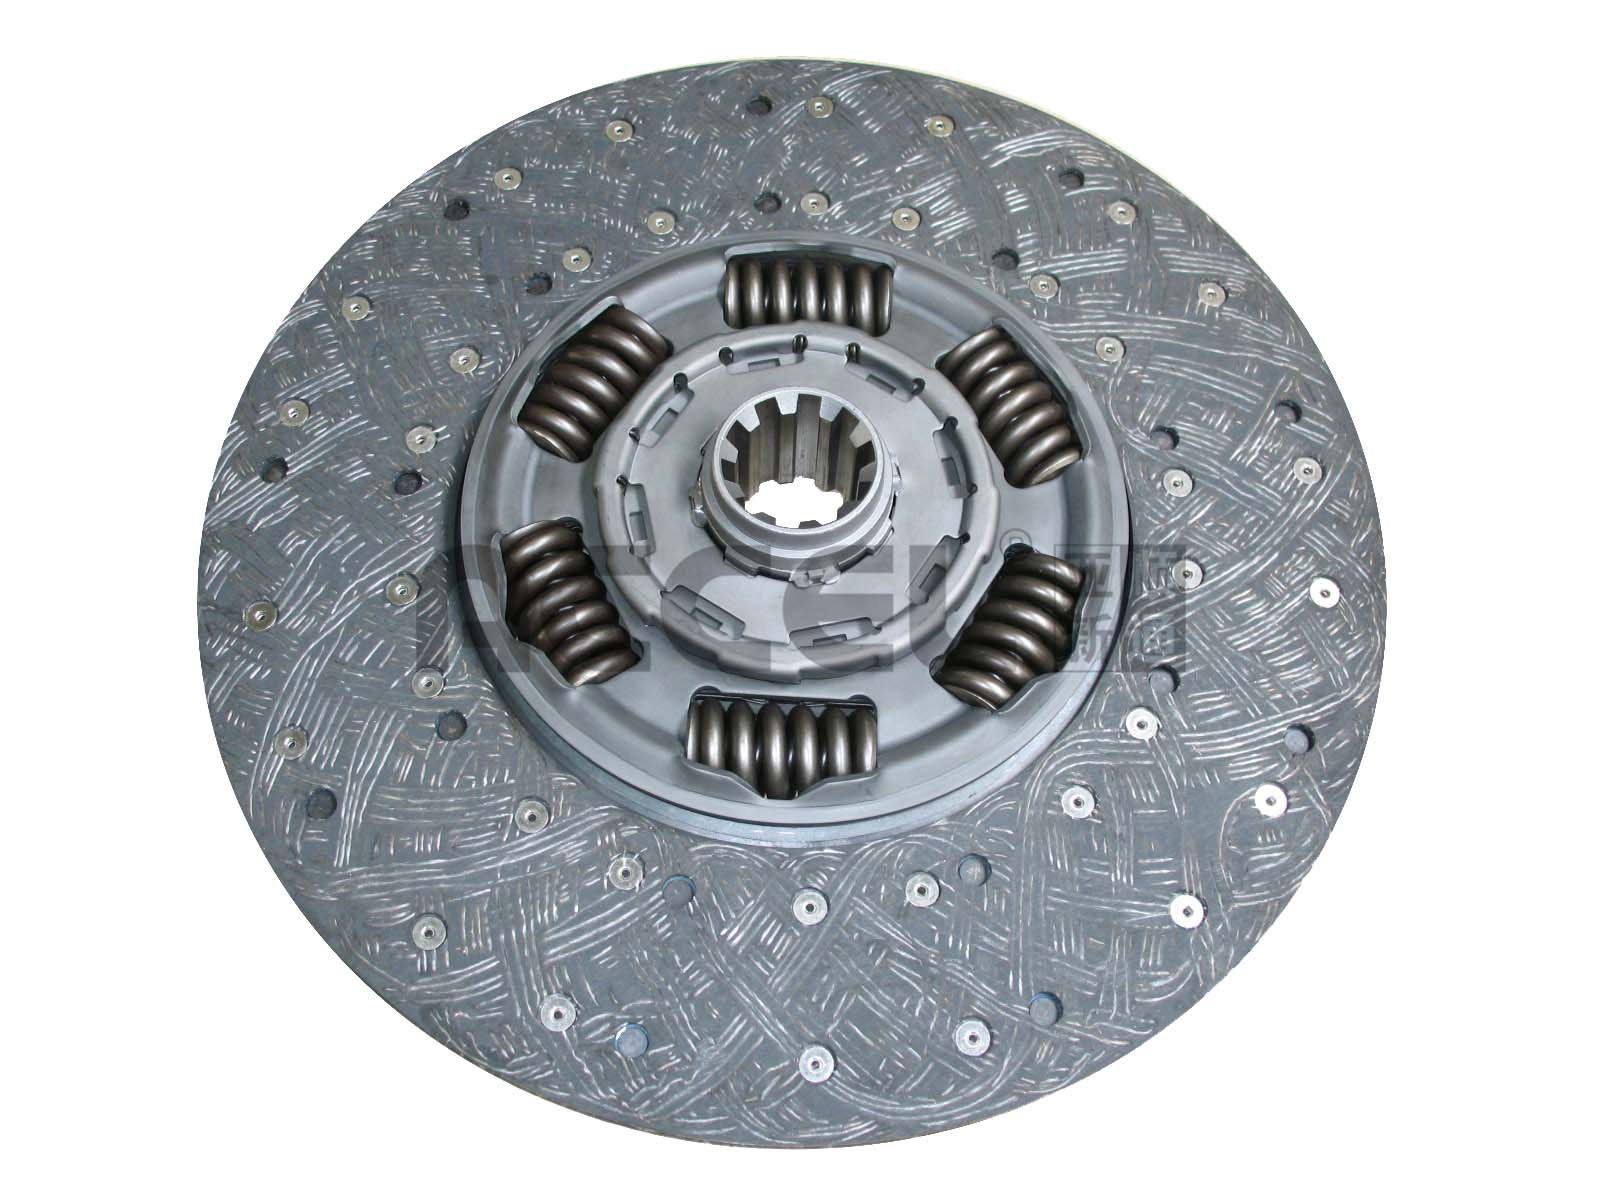 Clutch Disc/OE:81 30301 0217/430*240*10*50.8/AMN-005TS/MAN/CL1525/018 250 8003/1878 080 035/4202 2207